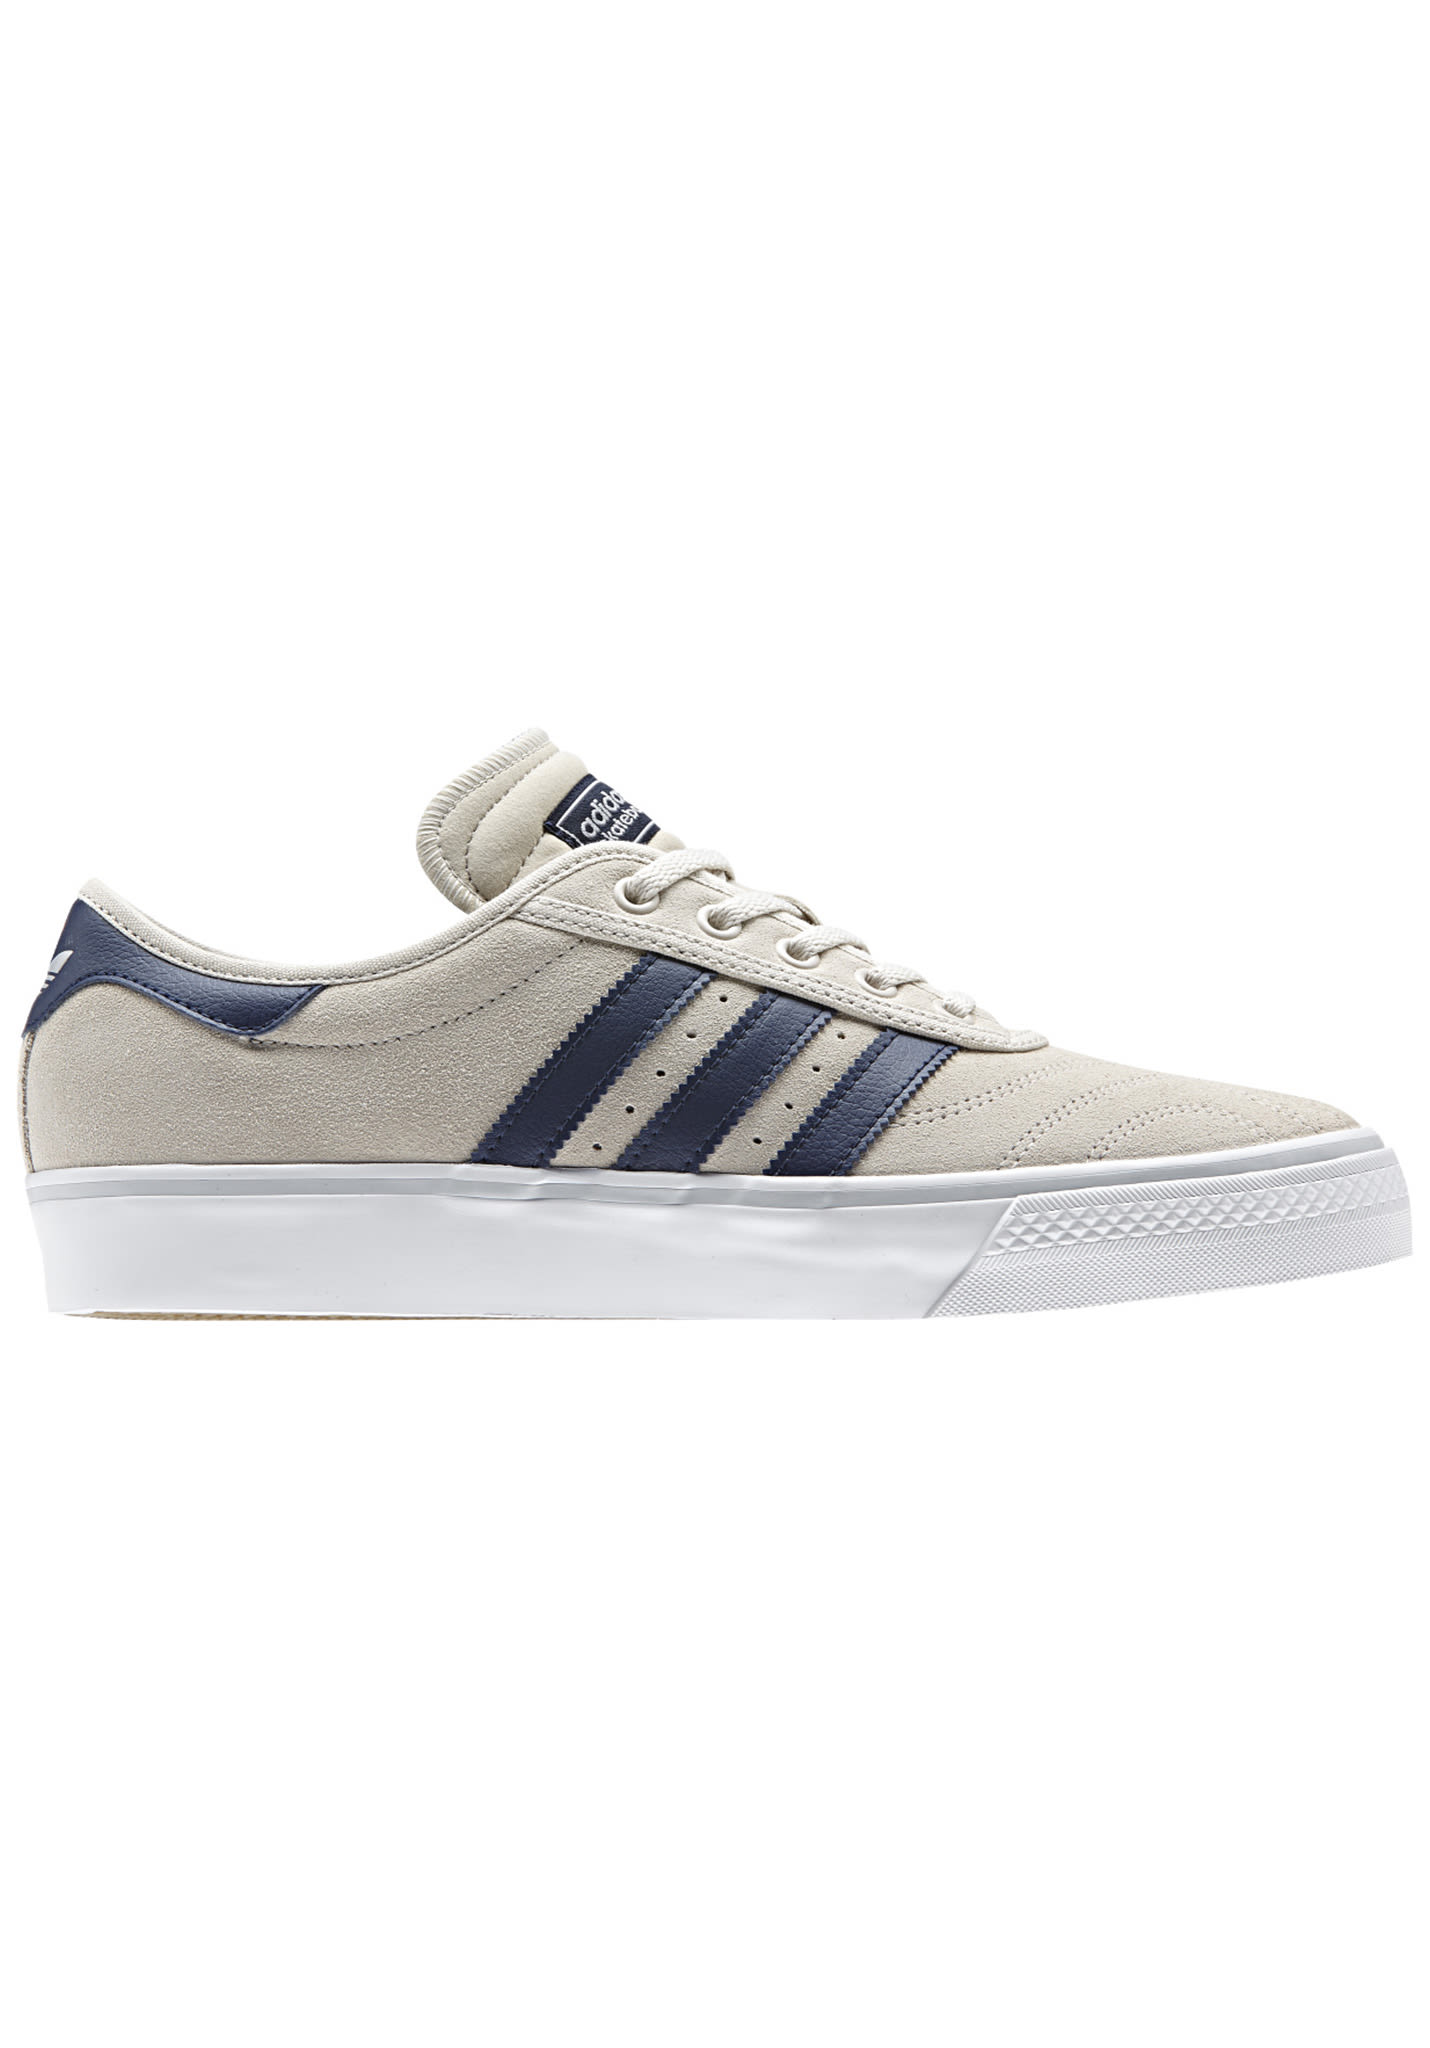 d0cc9d78b Adidas Skateboarding Adi-Ease Premiere - Sneakers for Men - Brown - Planet  Sports